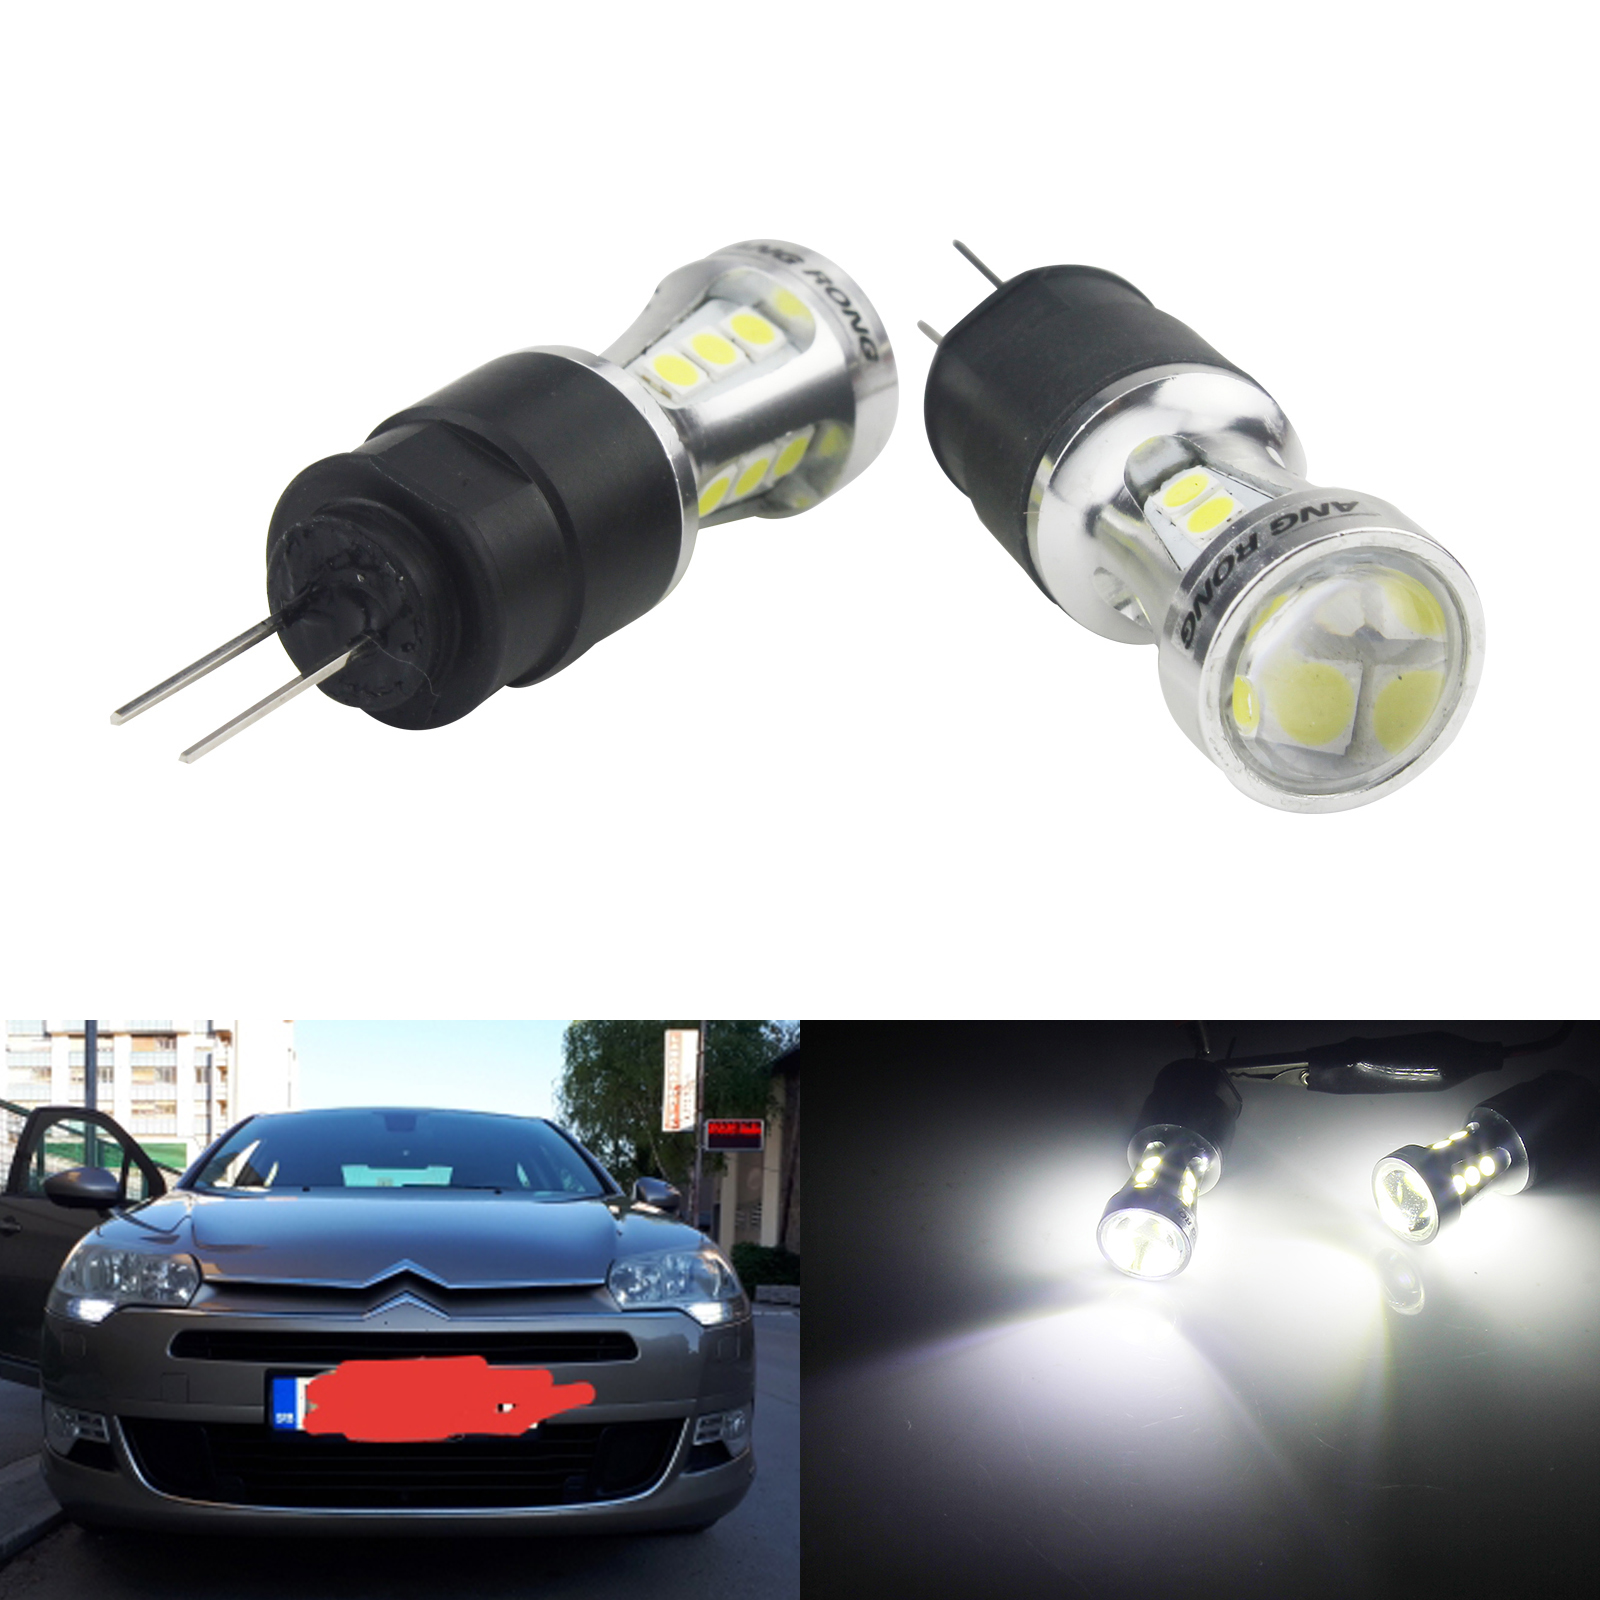 2x G4 HP24W Bulbs 18 SMD White <font><b>LED</b></font> Side Daytime <font><b>Light</b></font> DRL For Citron & <font><b>Peugeot</b></font> image